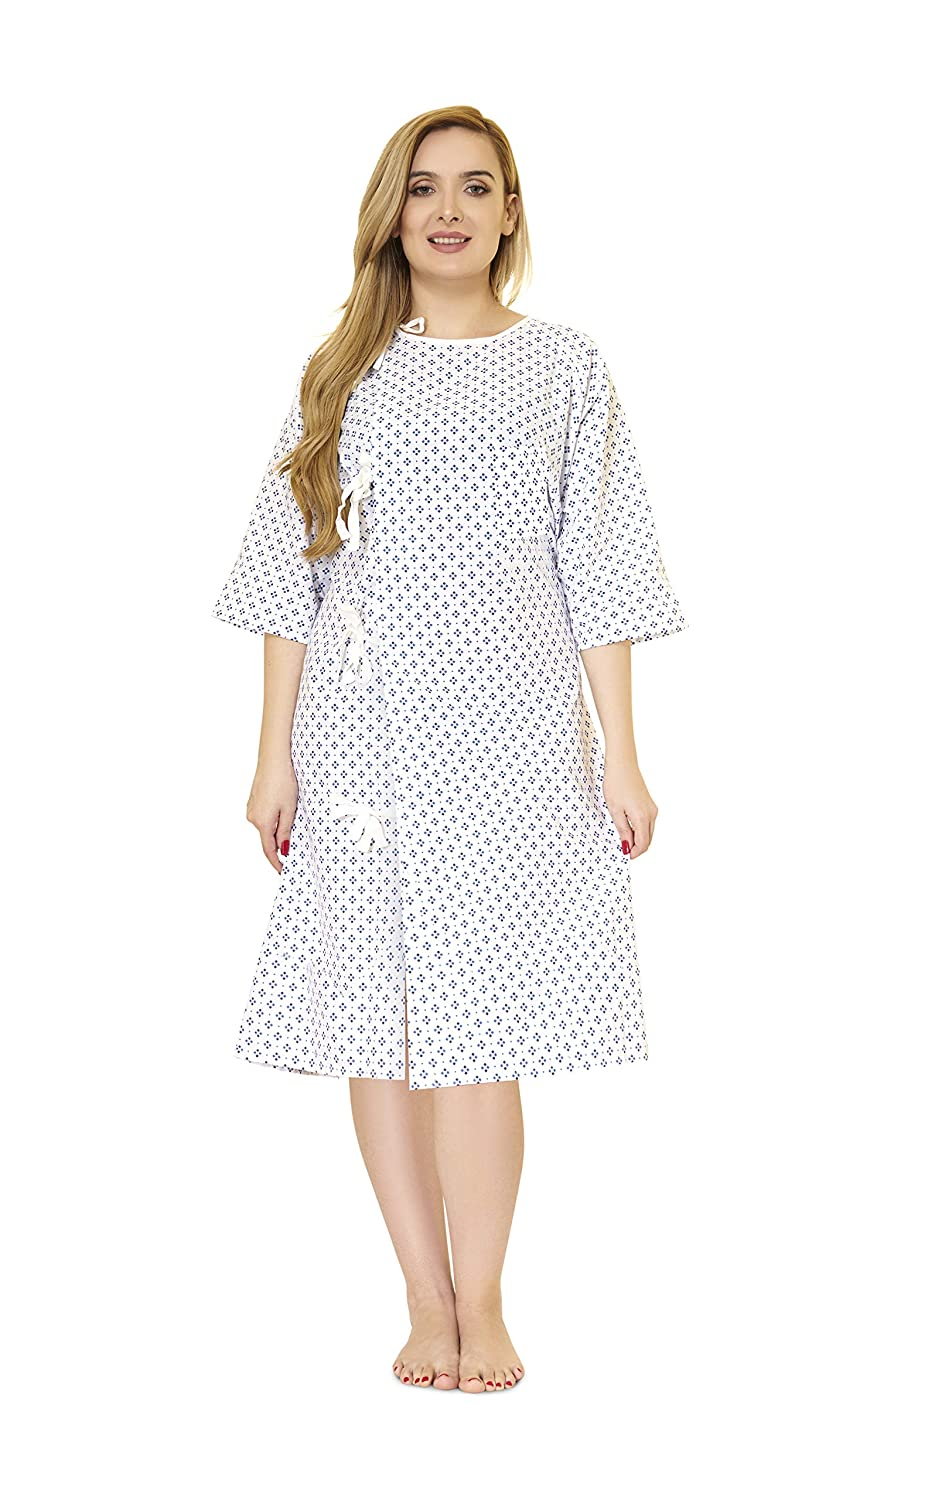 LUXCARE Comfortable Hospital Gown for Women and Men [4 Pack] Hospital Gown Costume ~ Unisex Patient Gowns Fits All Sizes up to XXL, Hospital Gown for Elderly, Hospice, Home Care, Labor Gowns